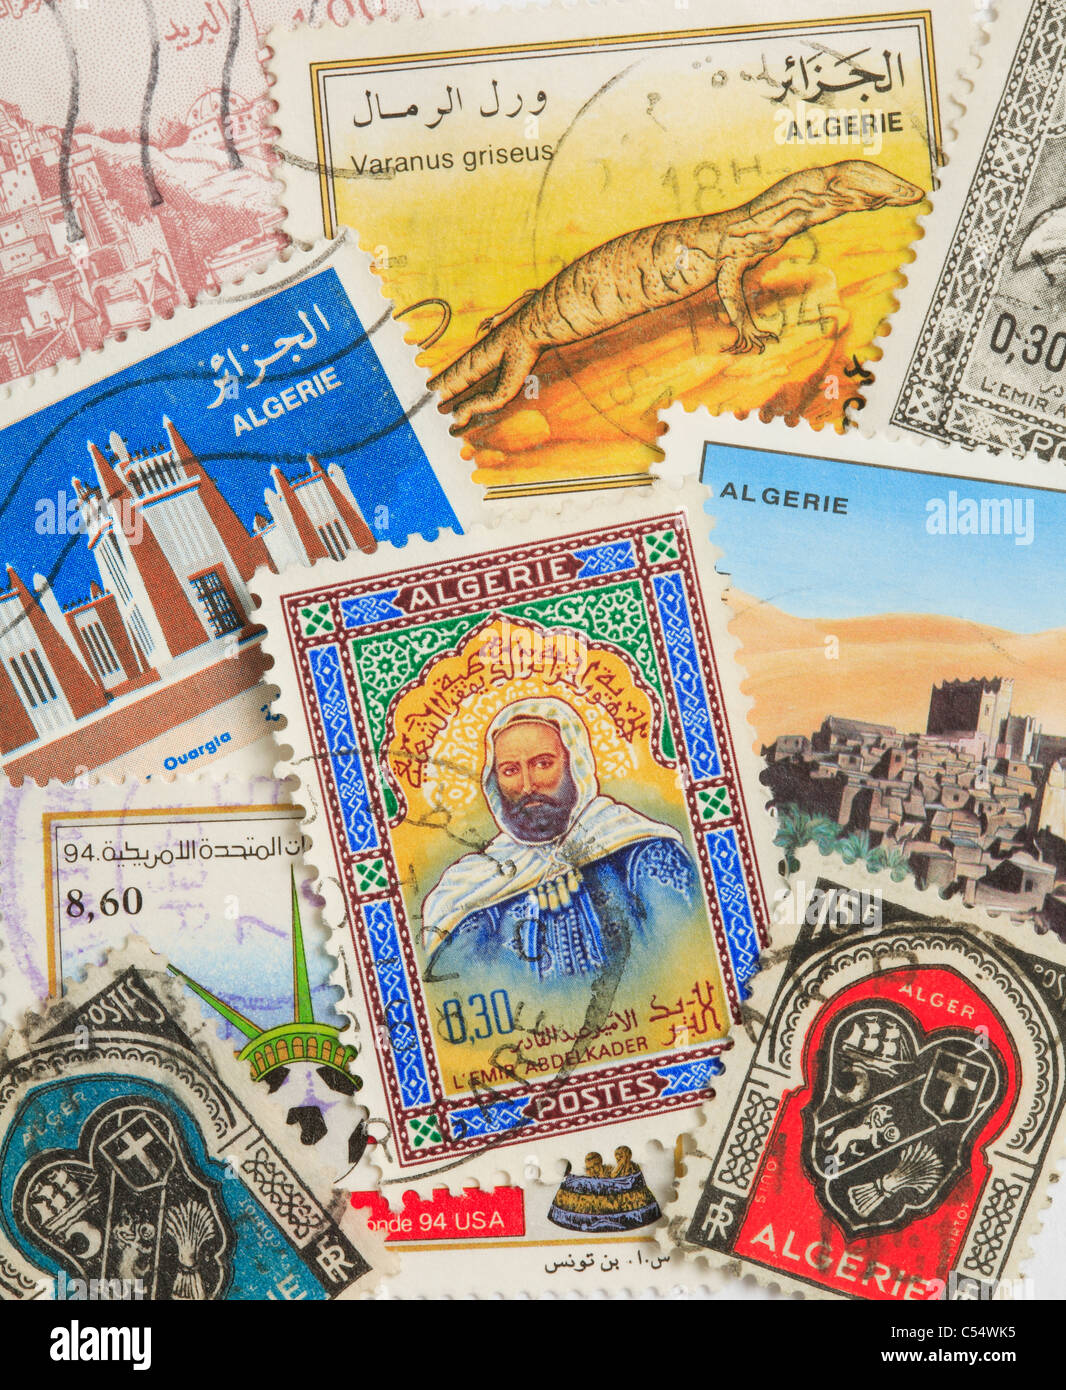 Postage Stamps from Algeria - Stock Image